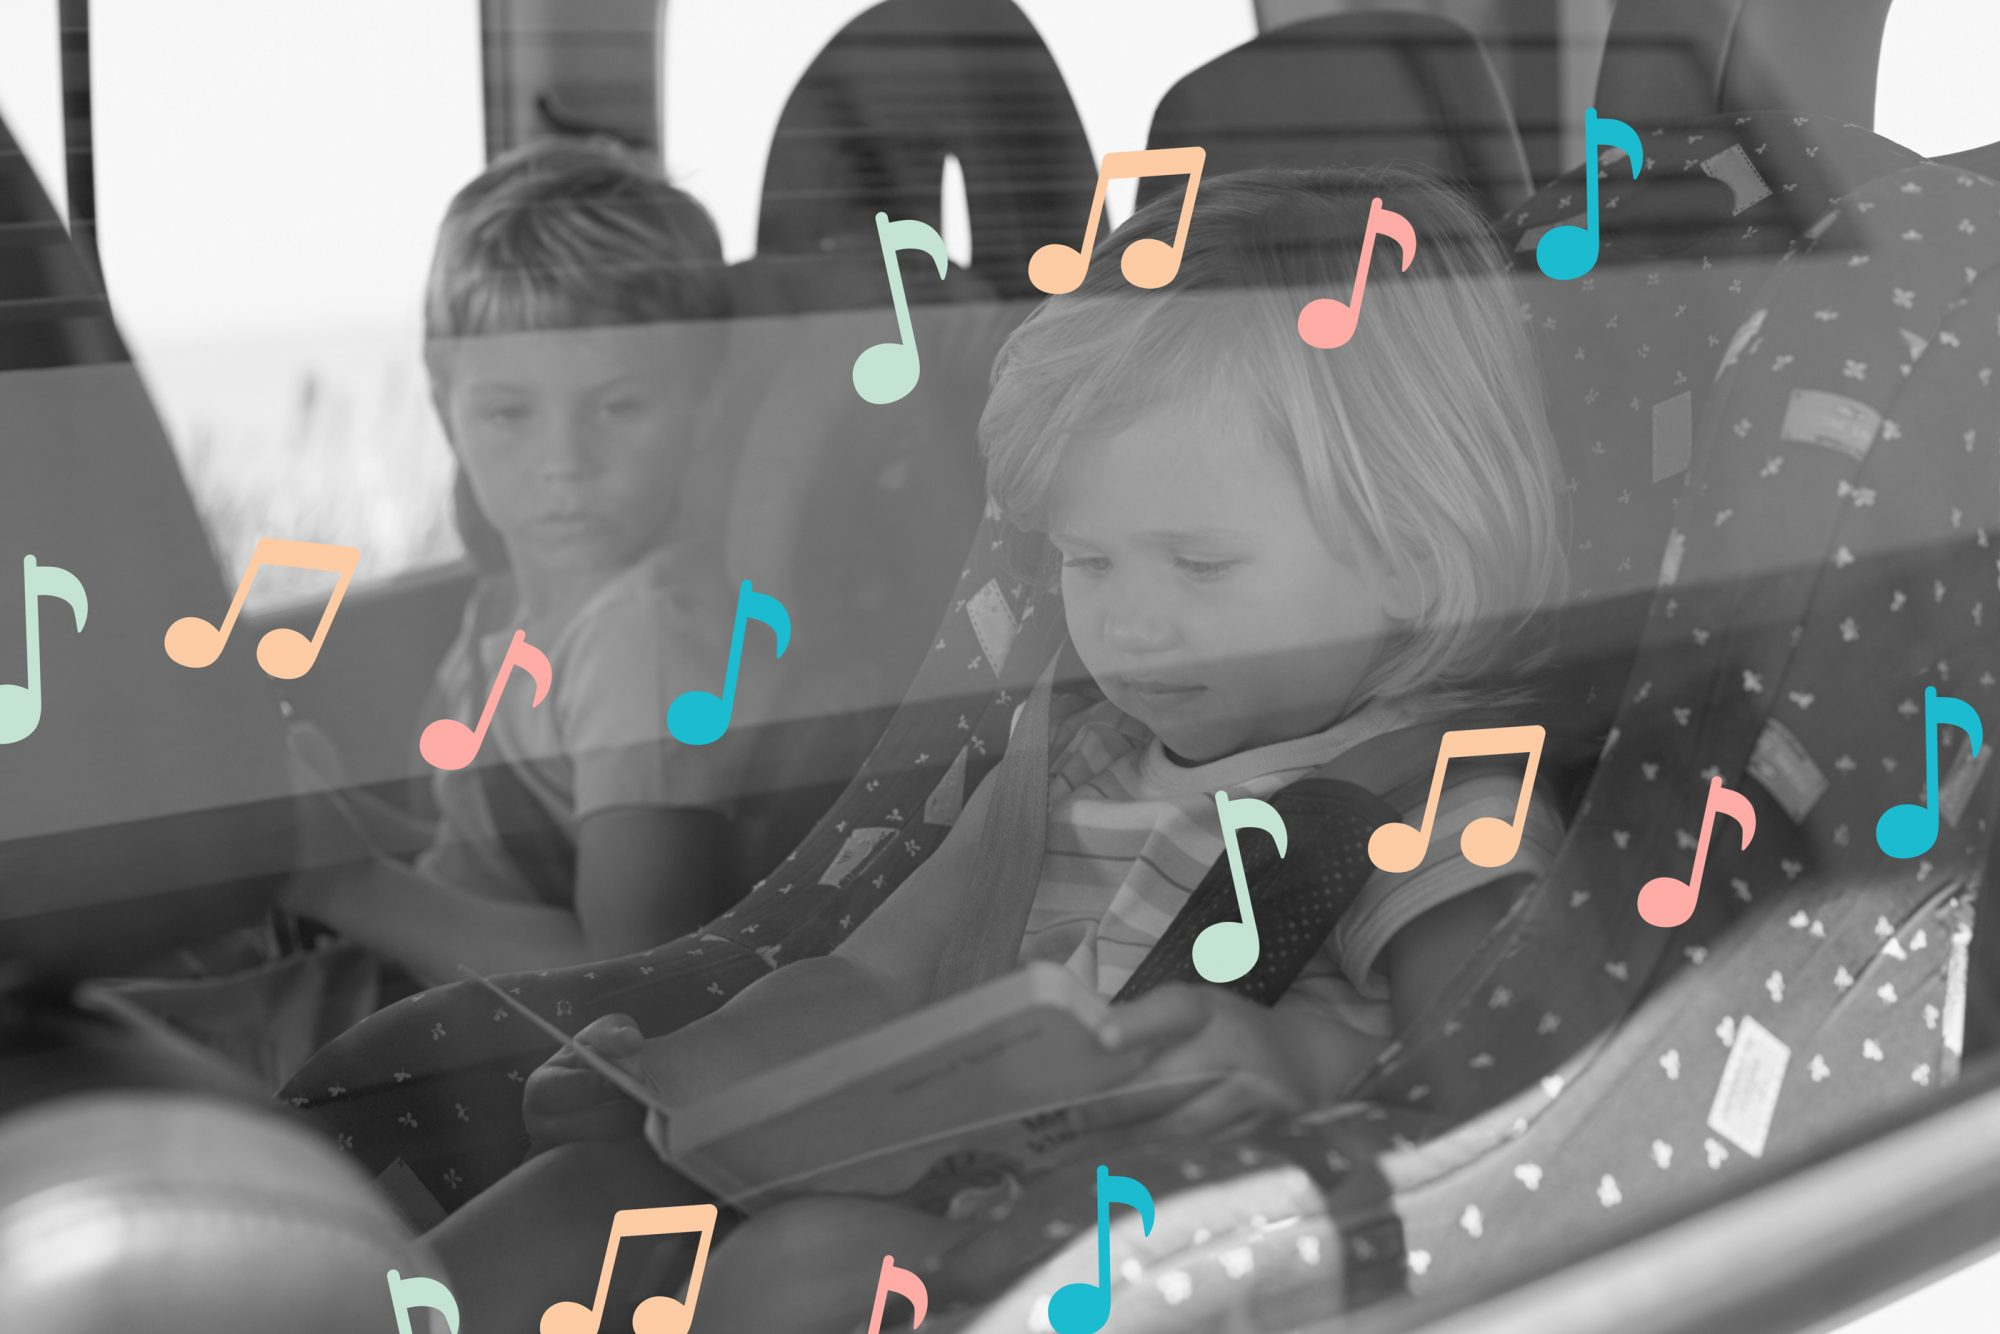 photo illustration of kids in a car with musical notes over them